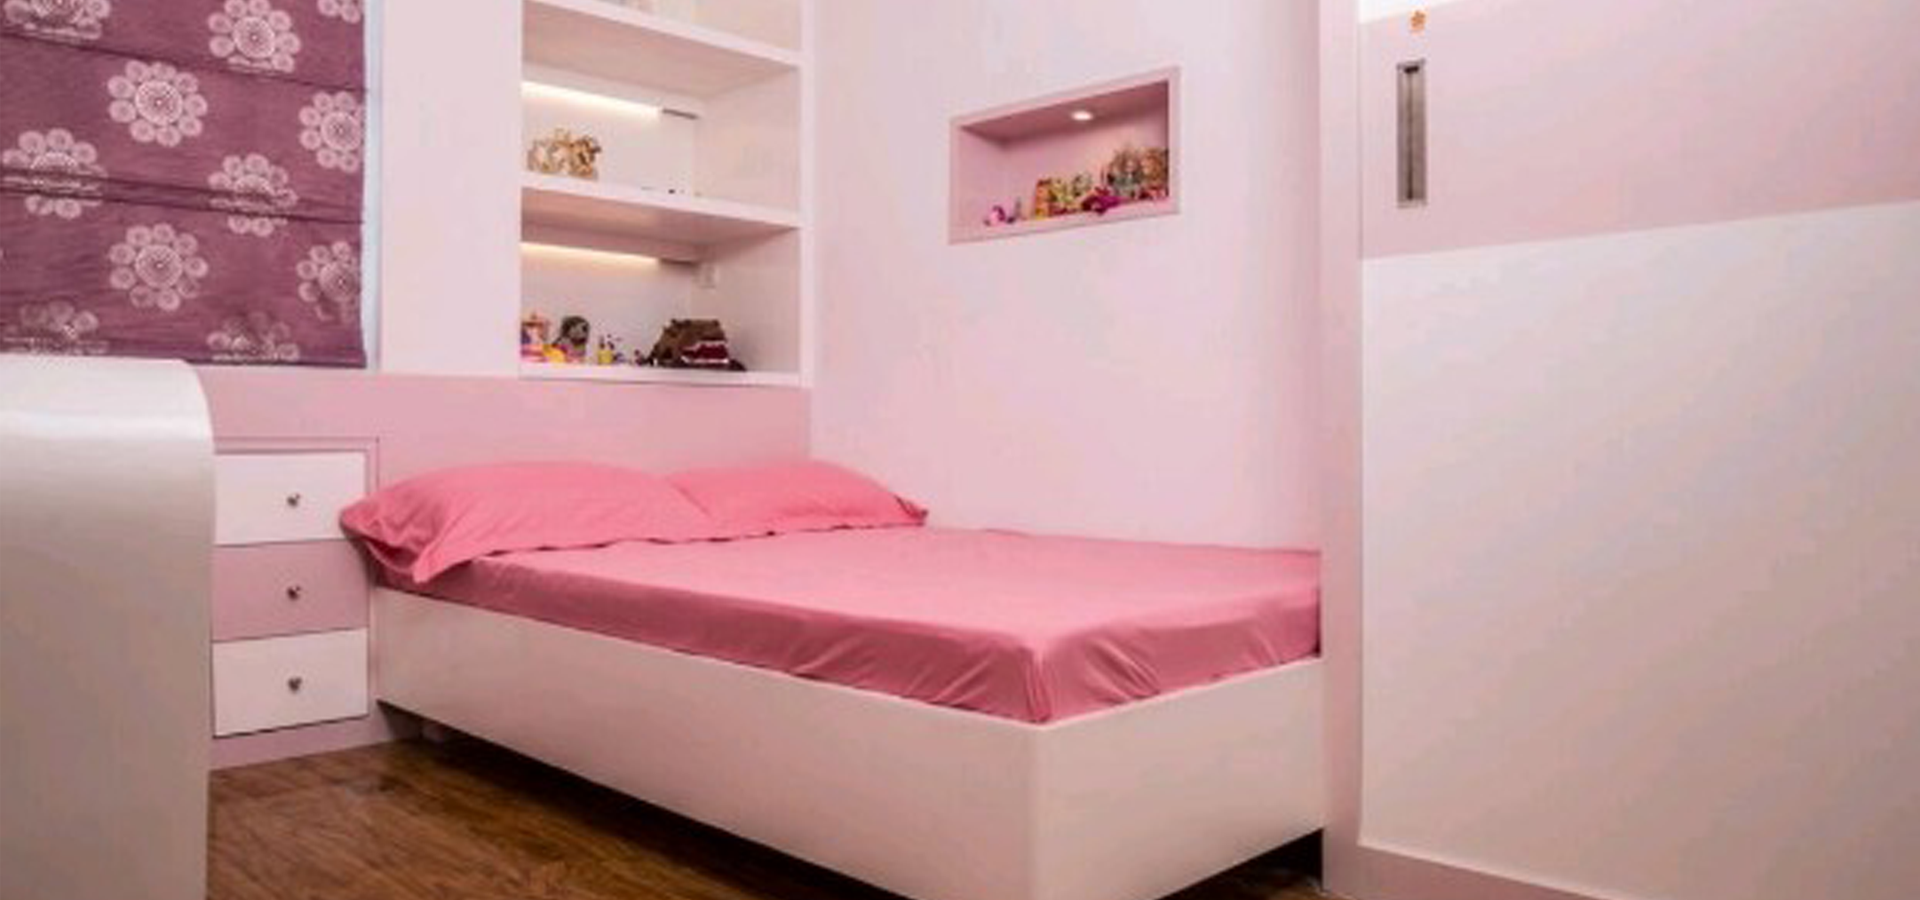 Dhapakhel_web-1-bed2